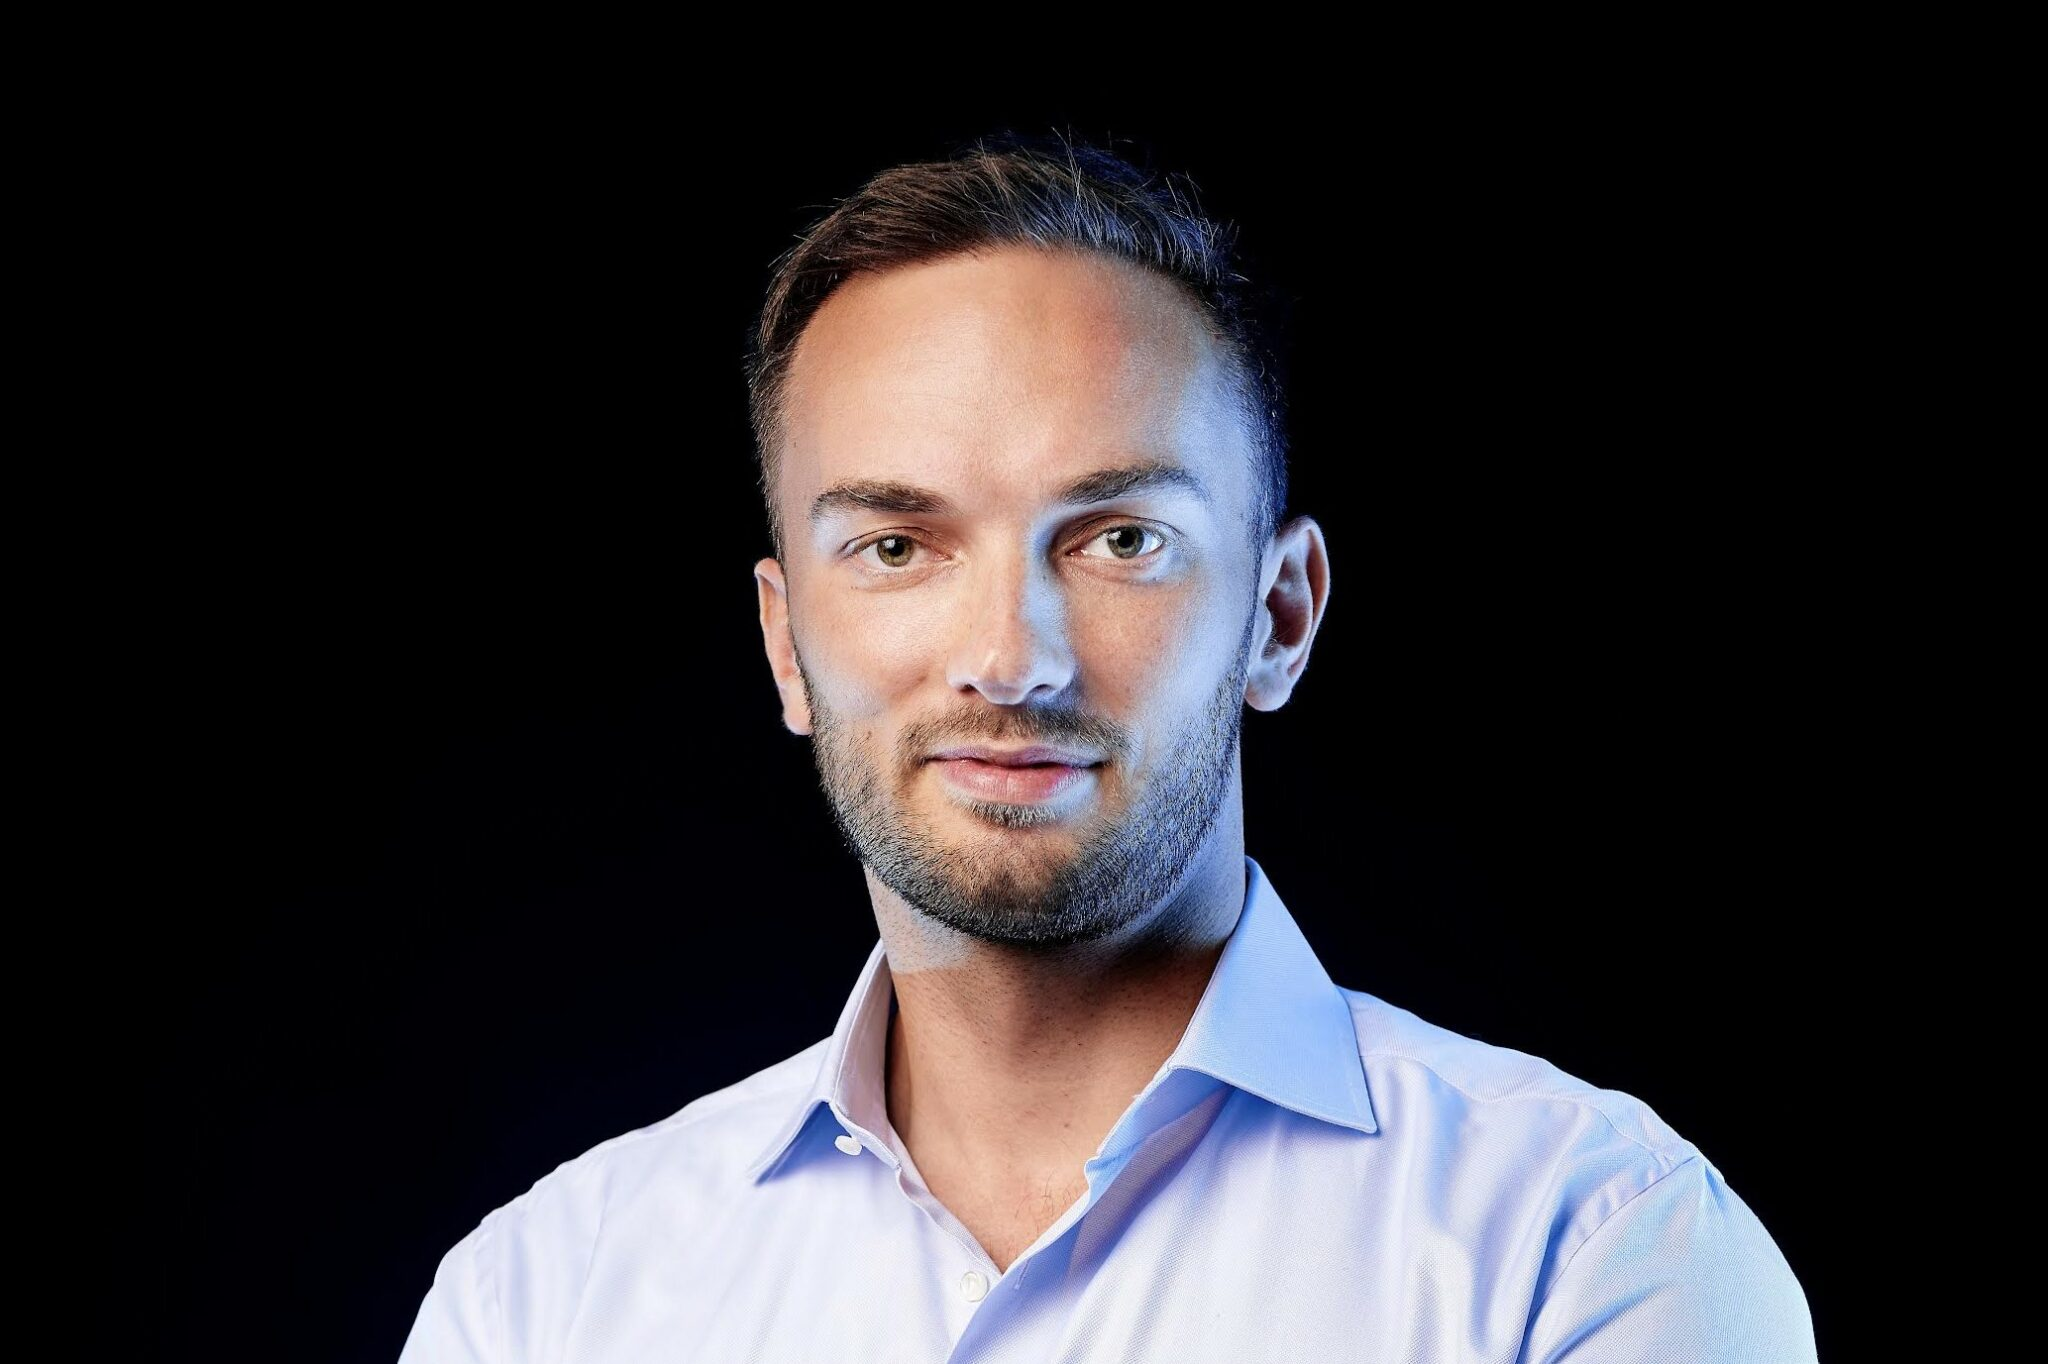 """""""Do I really need external funding and is my company really a VC case?"""": Interview with Uwe Horstmann, Co-Founder and General Partner of Project A Ventures"""